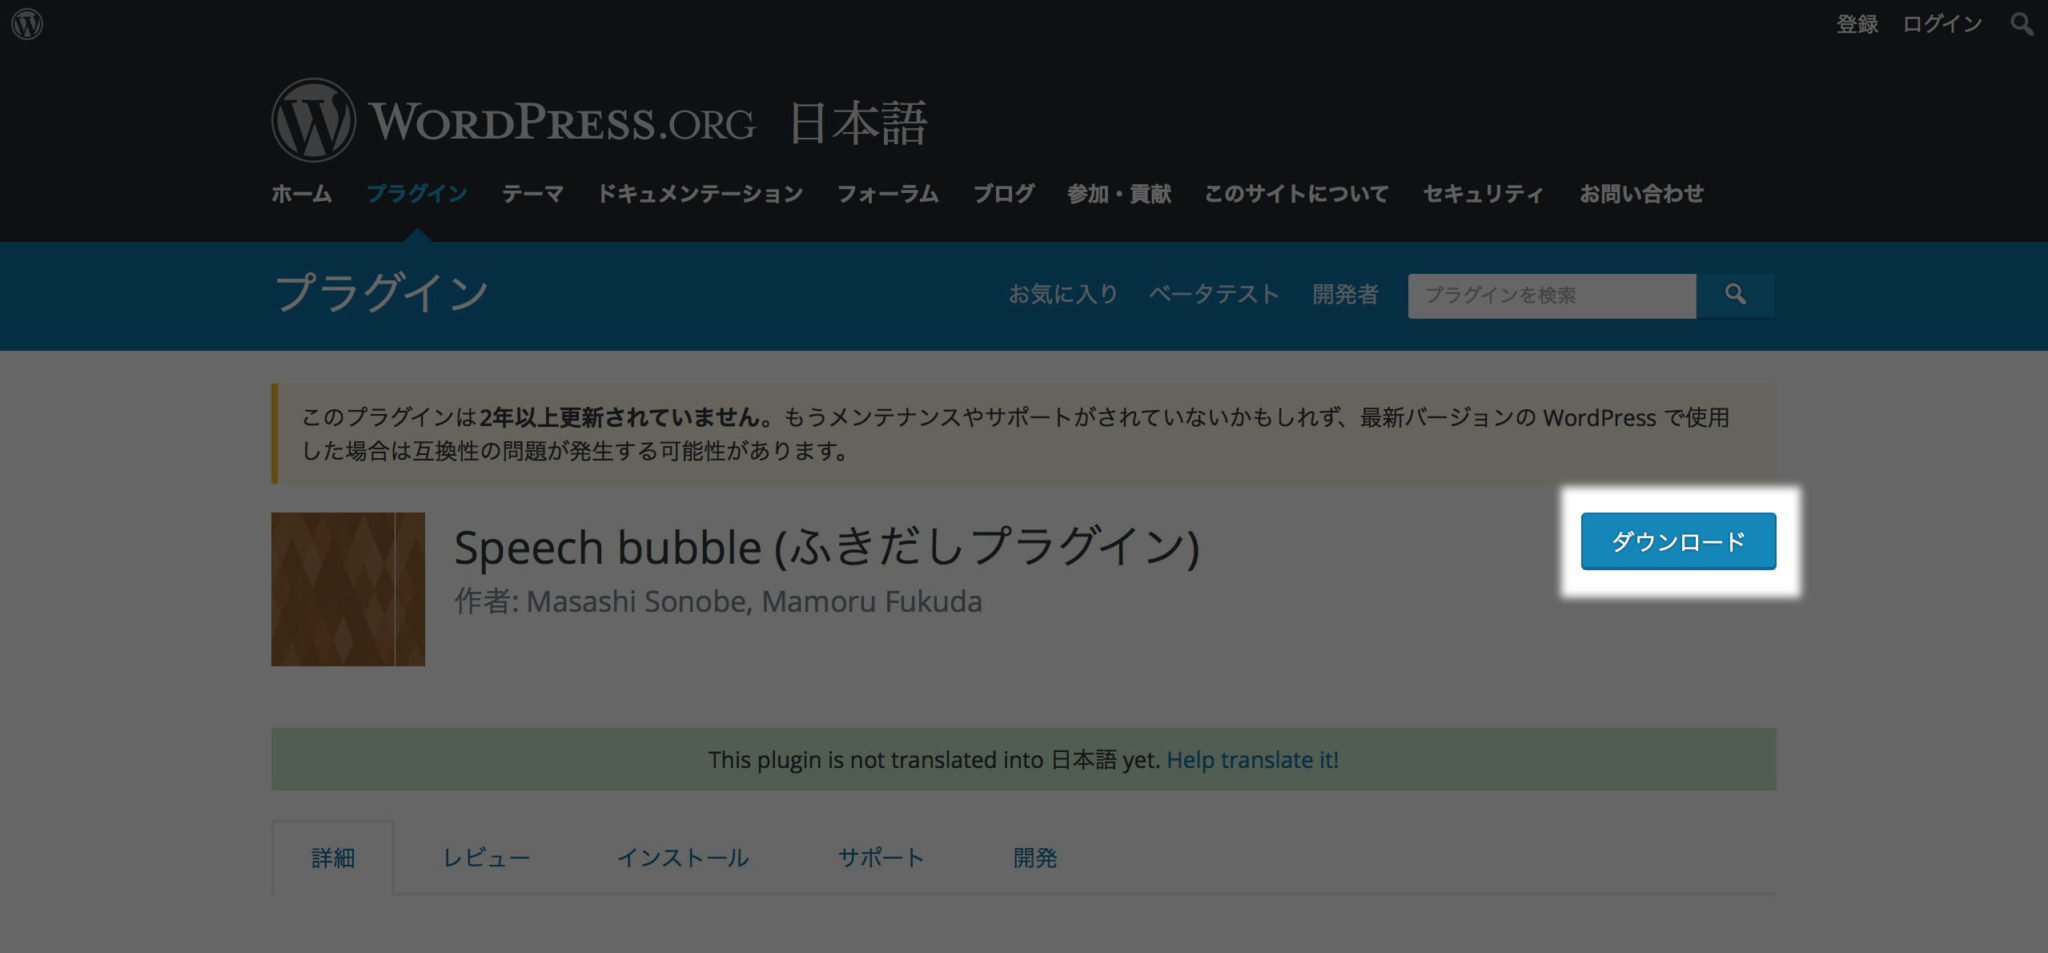 WordPress 会話